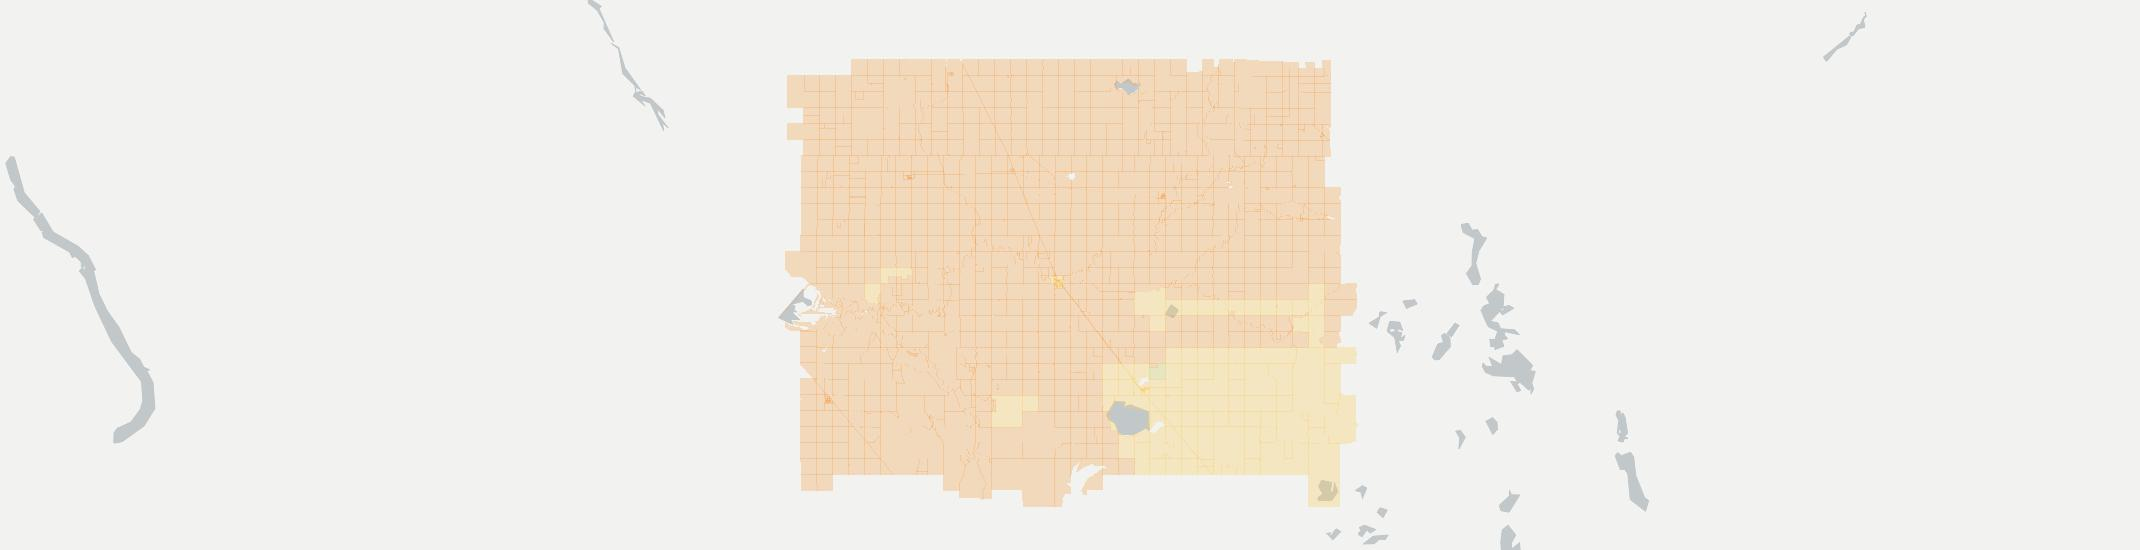 Willow City Internet Competition Map. Click for interactive map.